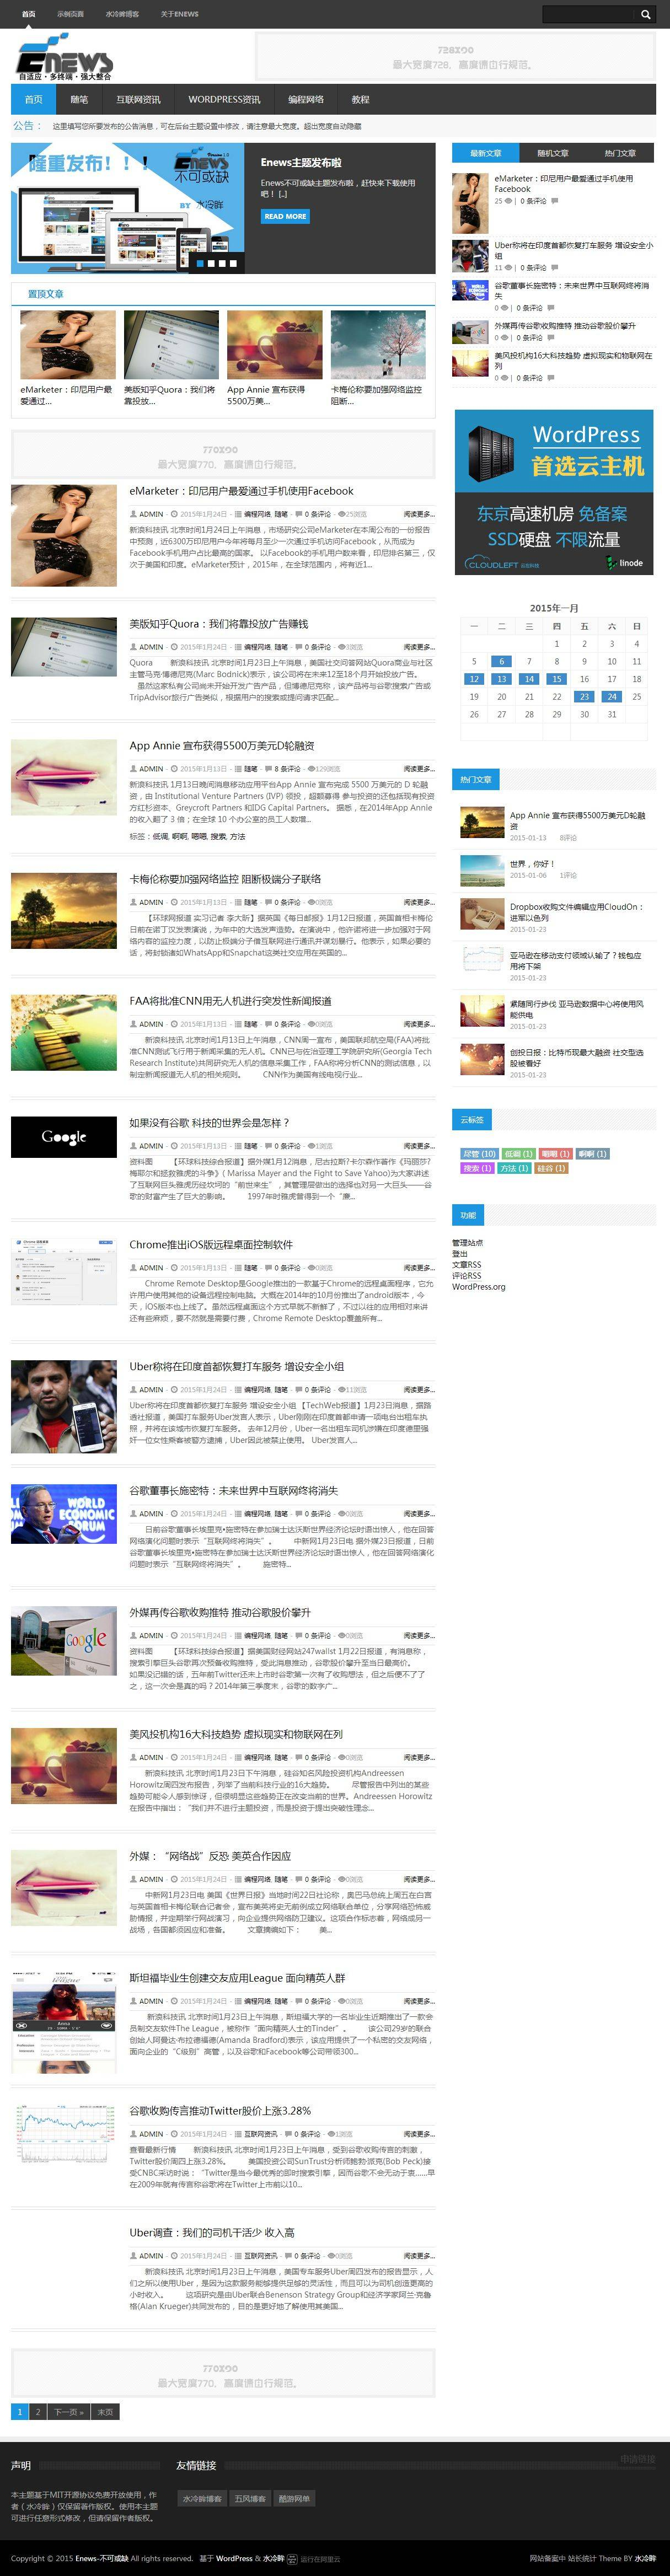 enews-theme-blog